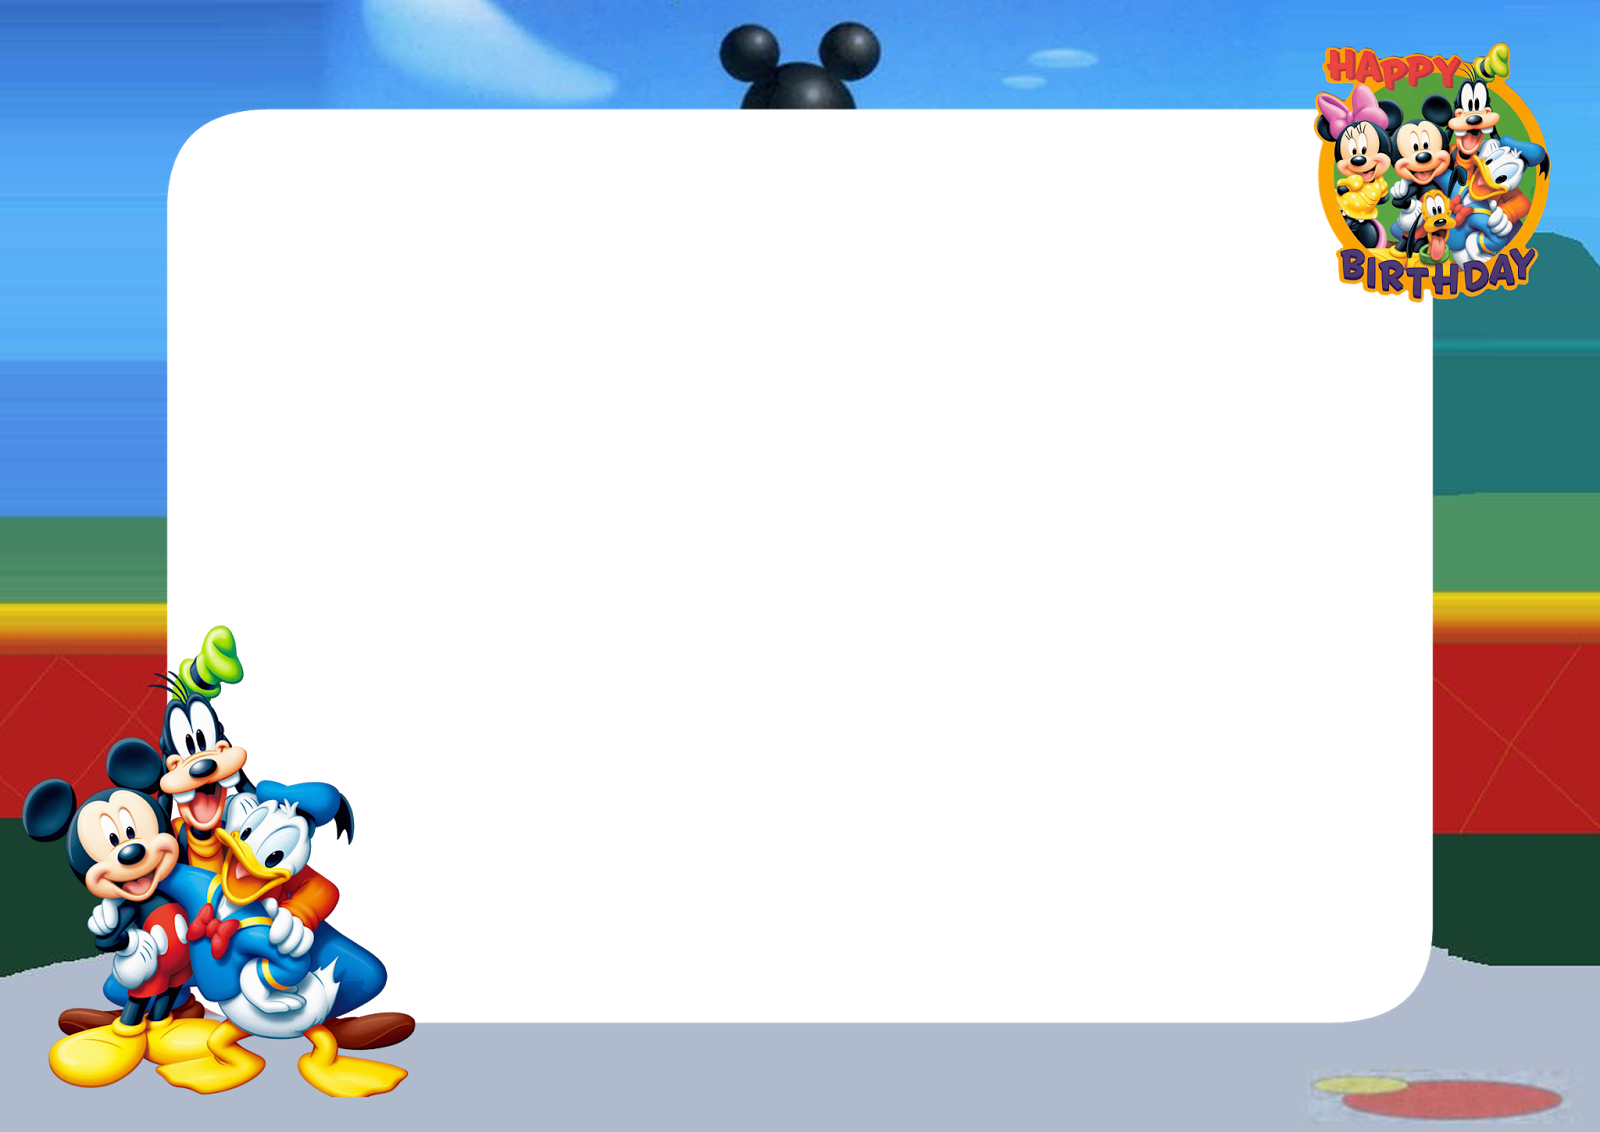 Mickey Mouse Birthday Png Frame Printable Png Frames Cartoon Character Png Photo Frames